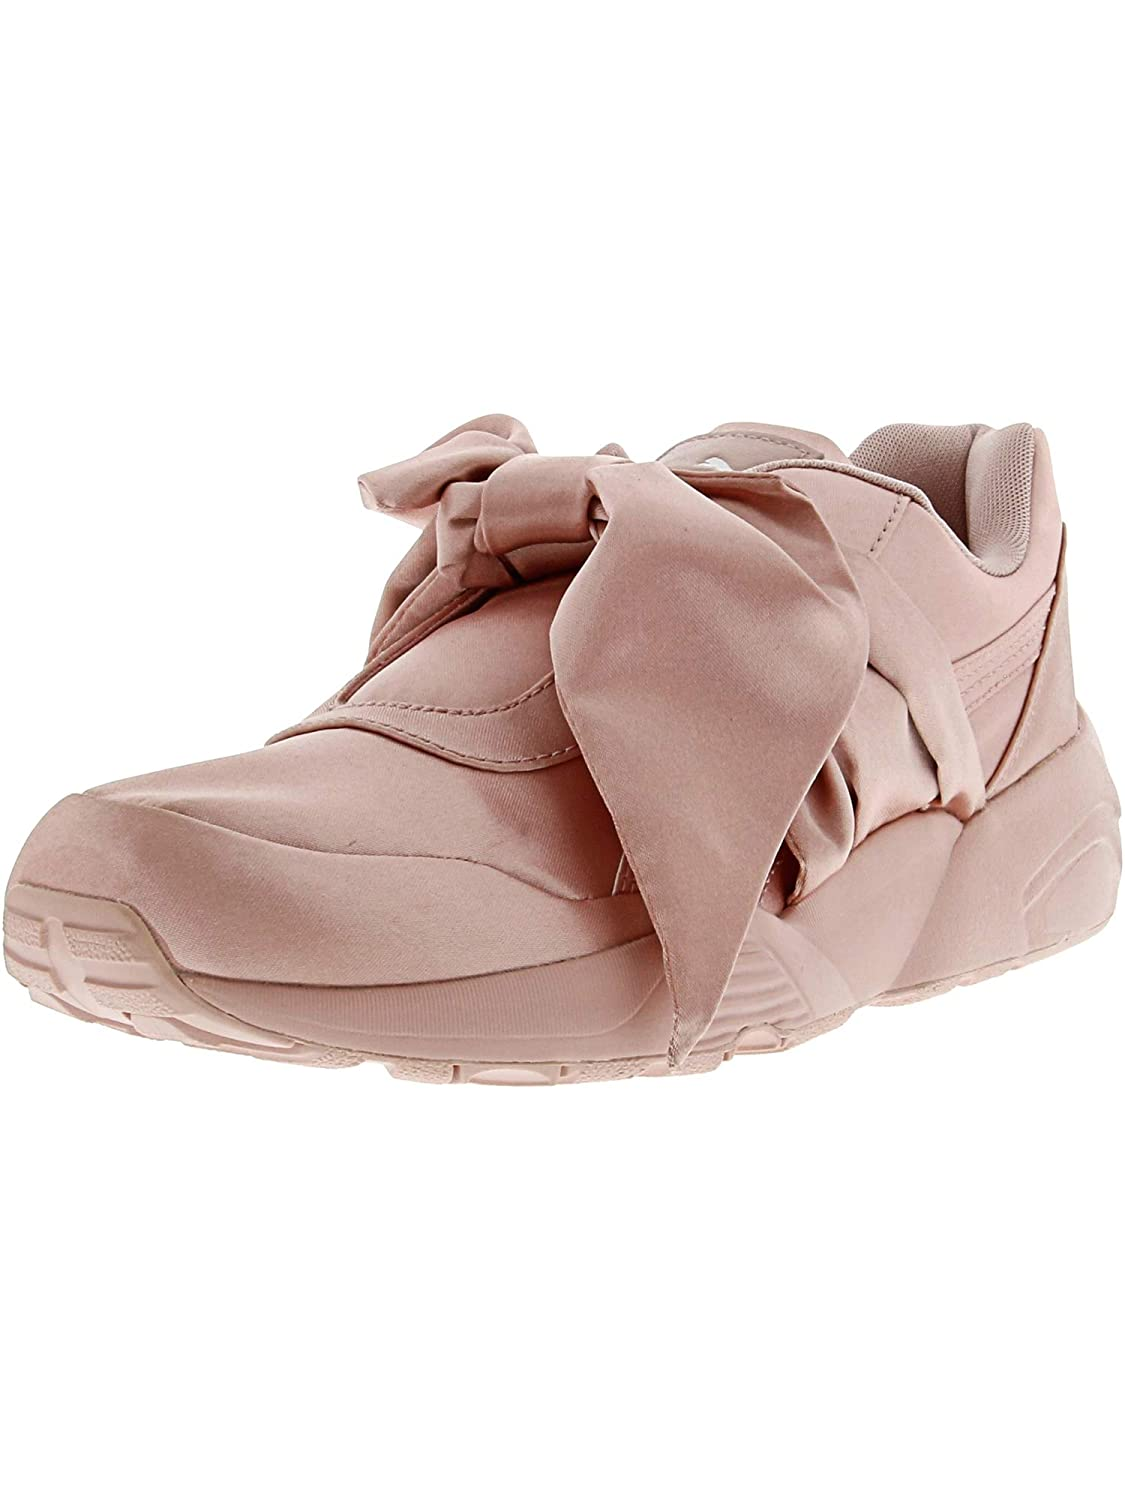 the latest d9d38 78412 Puma Fenty by Rihanna Bow Sneaker 9. 5 Pink: Buy Online at ...